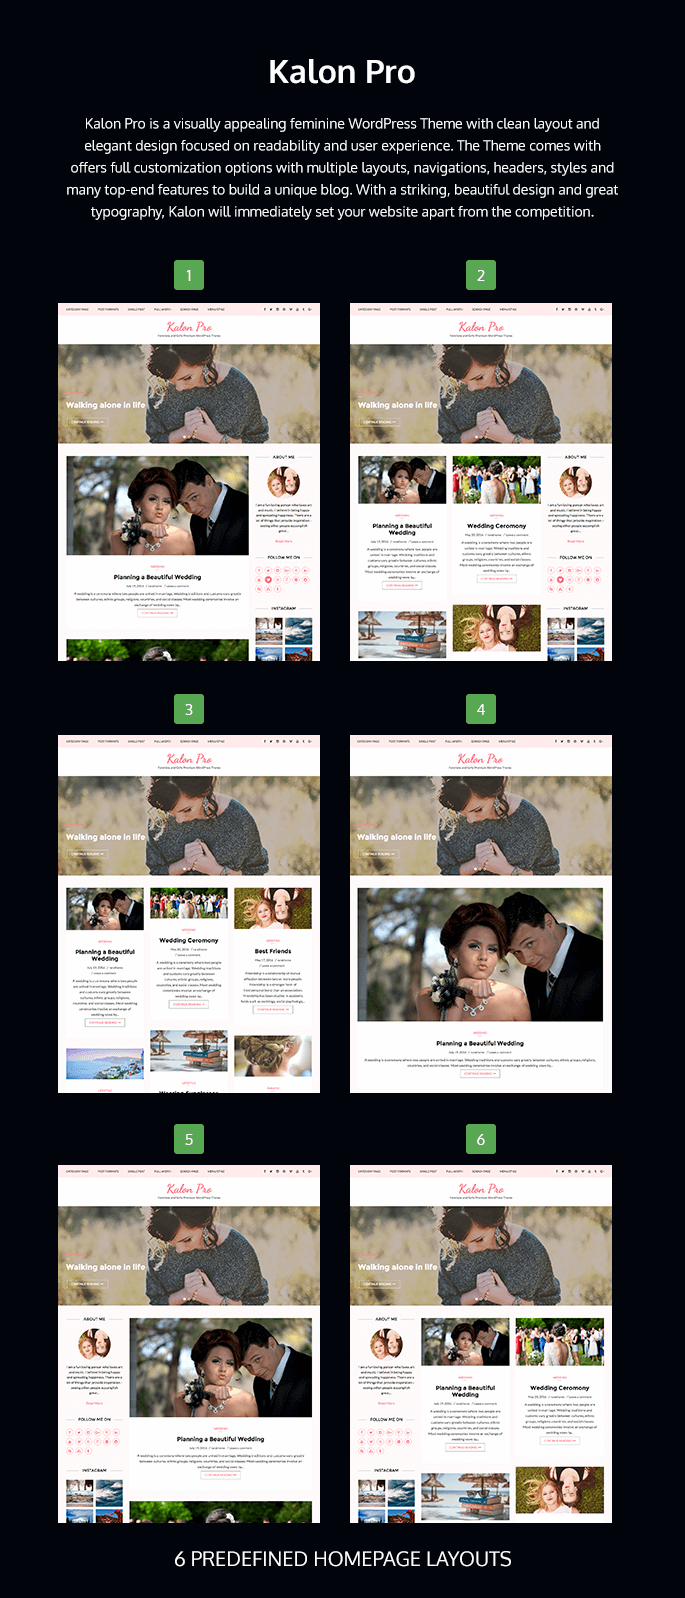 homepage layout of Kalon Pro